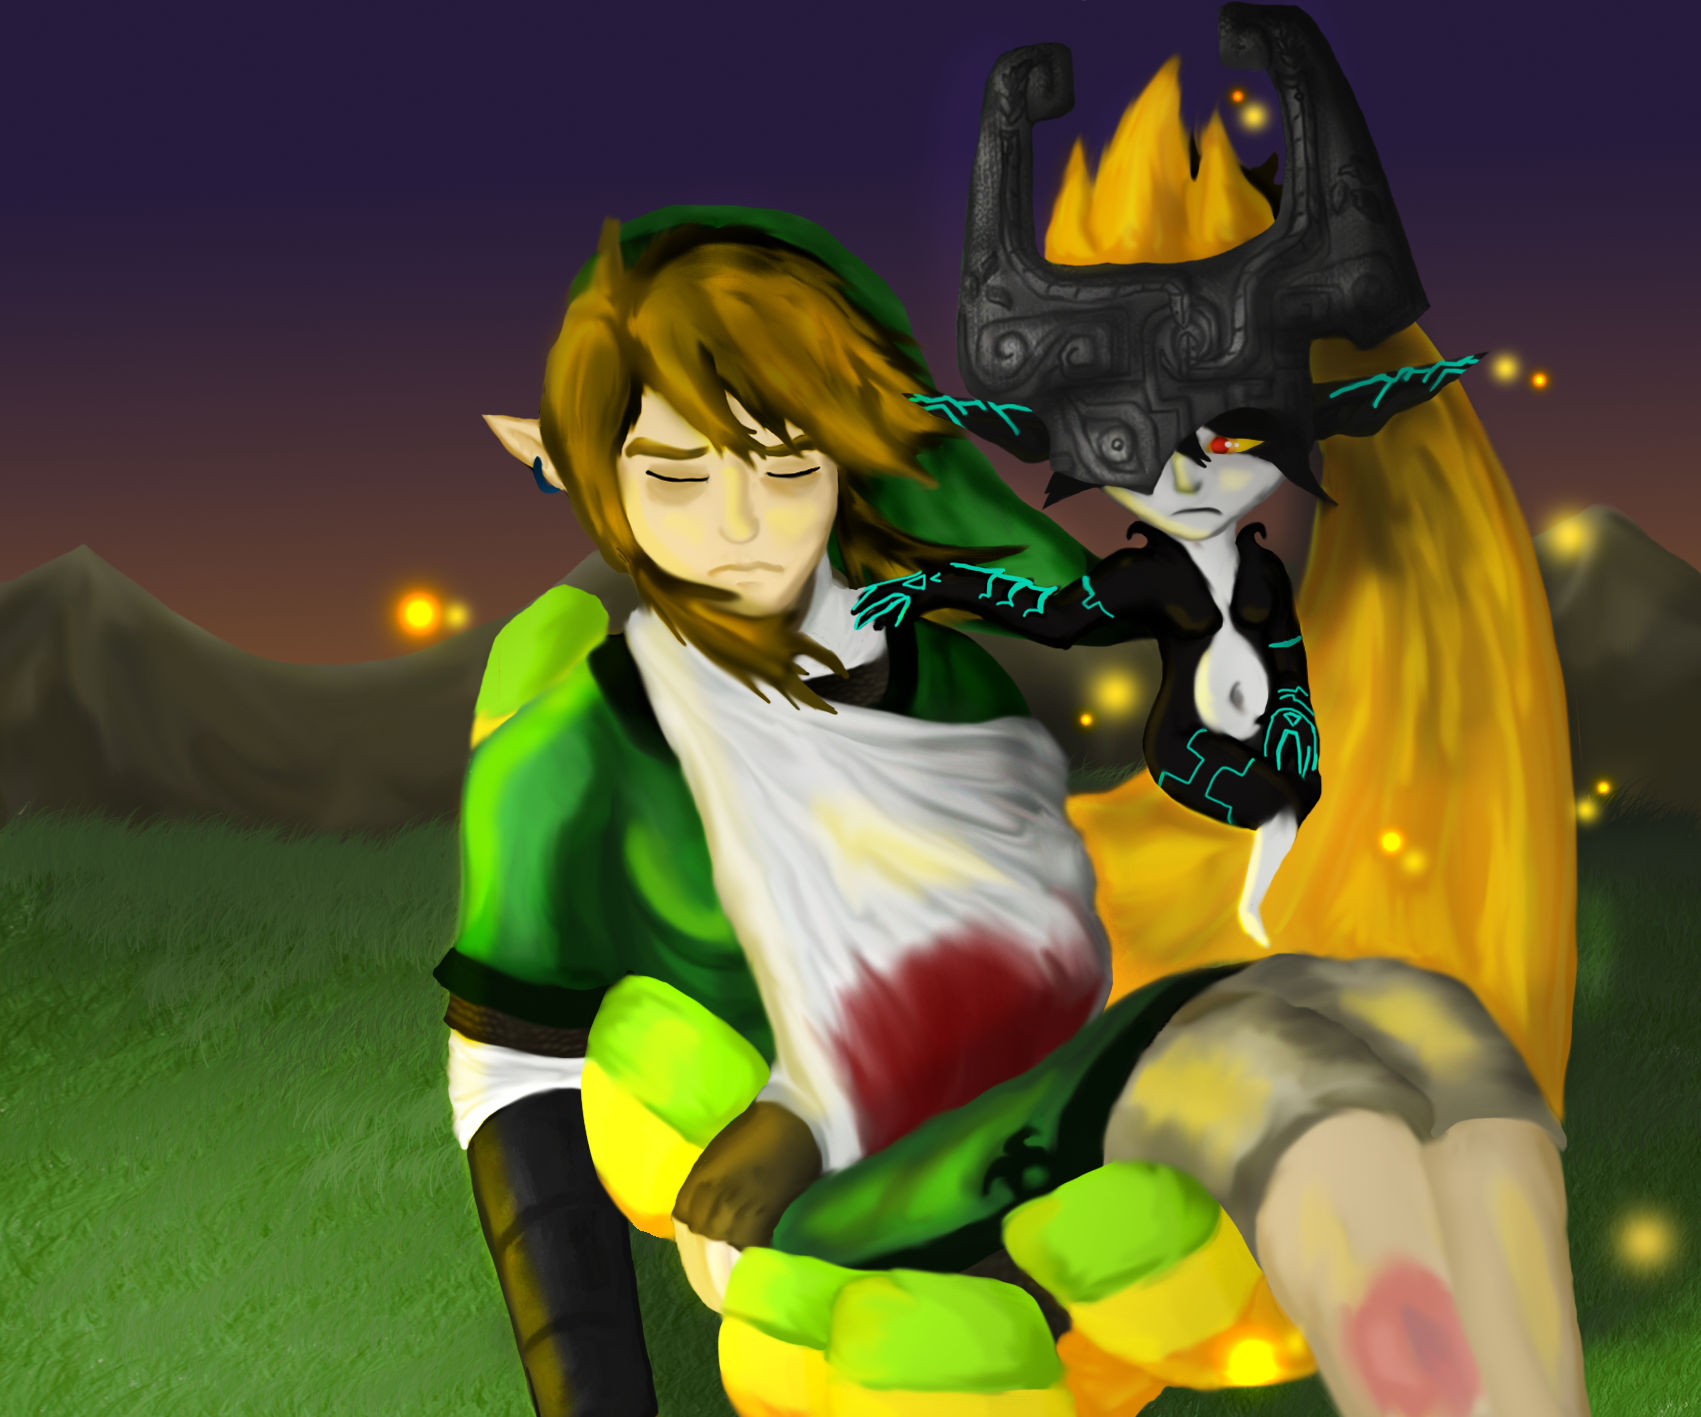 Pictures of Link And Zelda Have A Baby Fanfiction - #rock-cafe